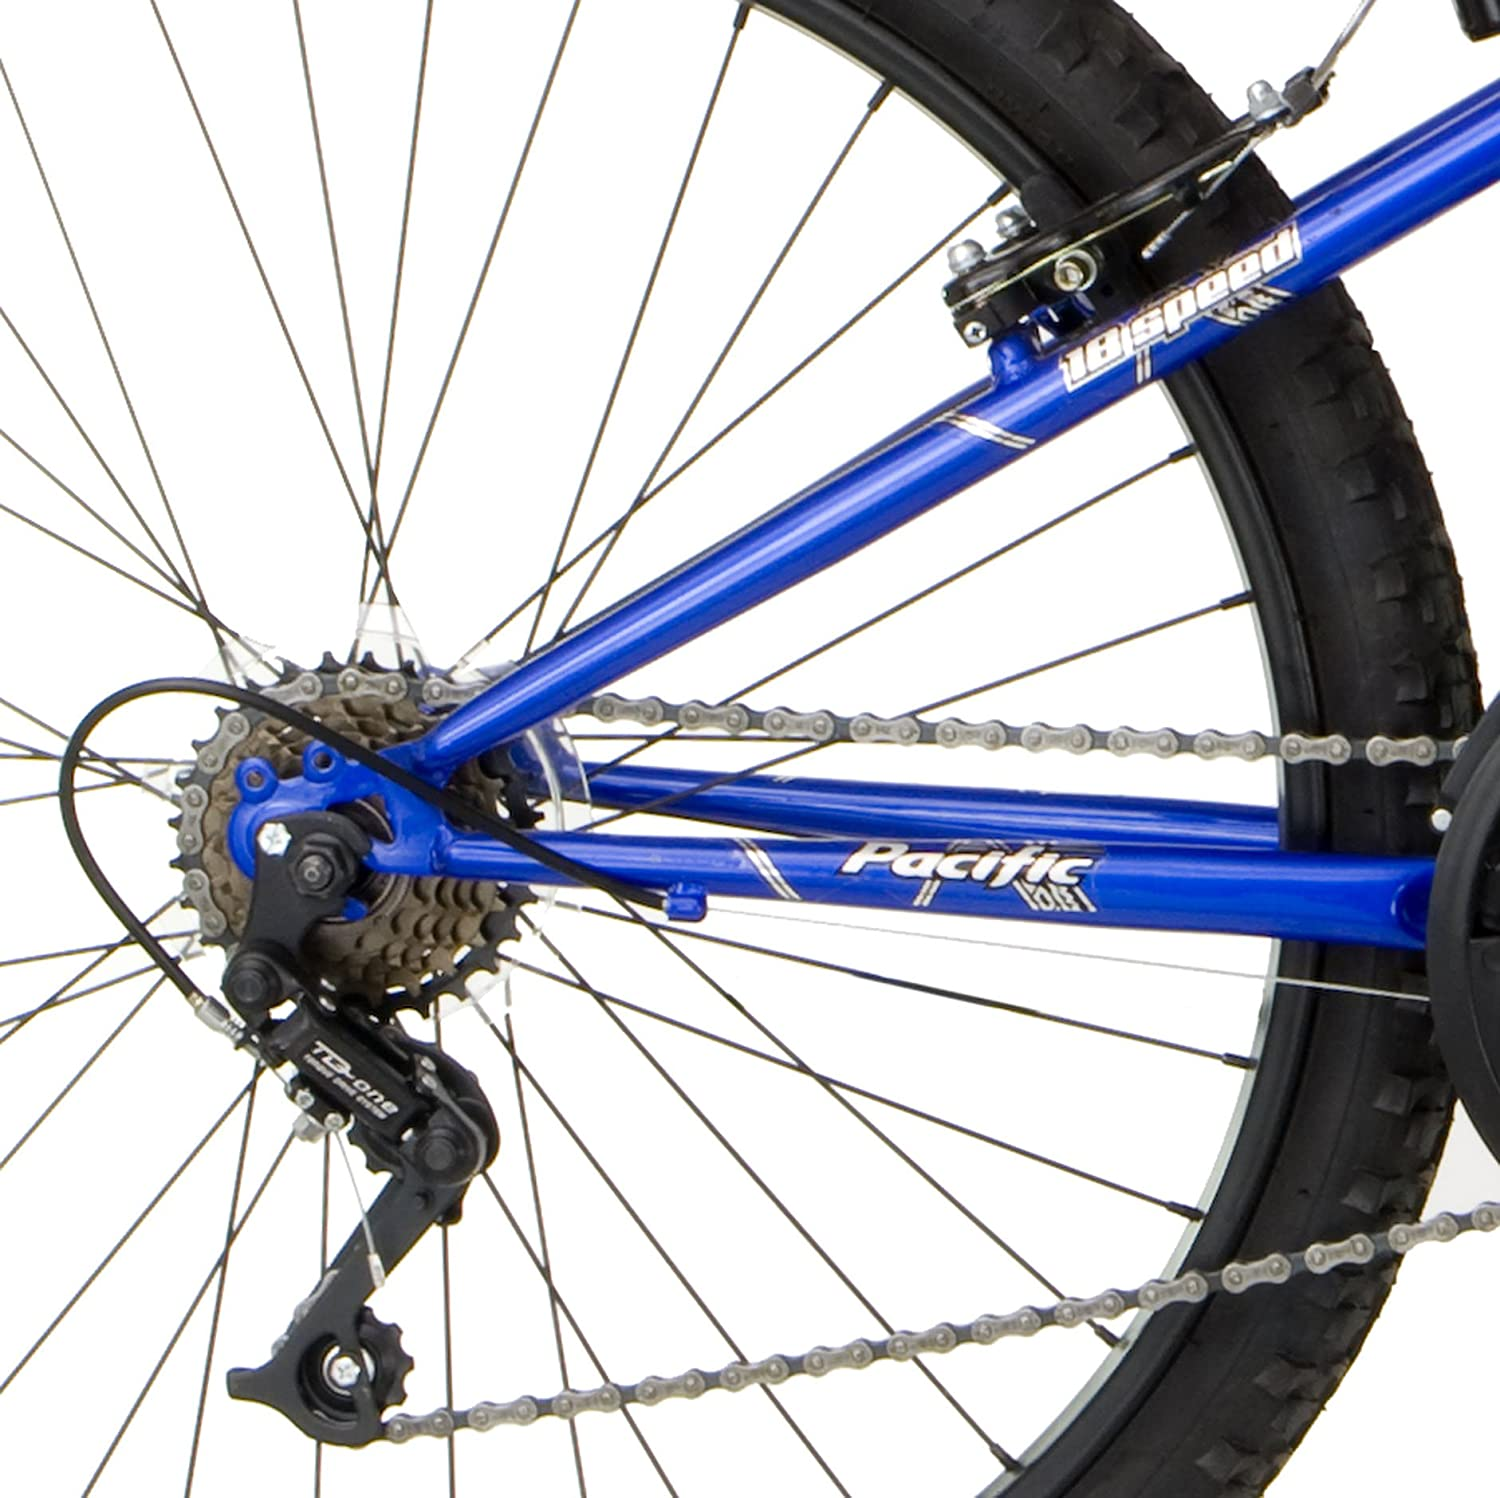 Pacific Quasar Mountain Bike Review Nomad 24 Sd Michael Ross 12